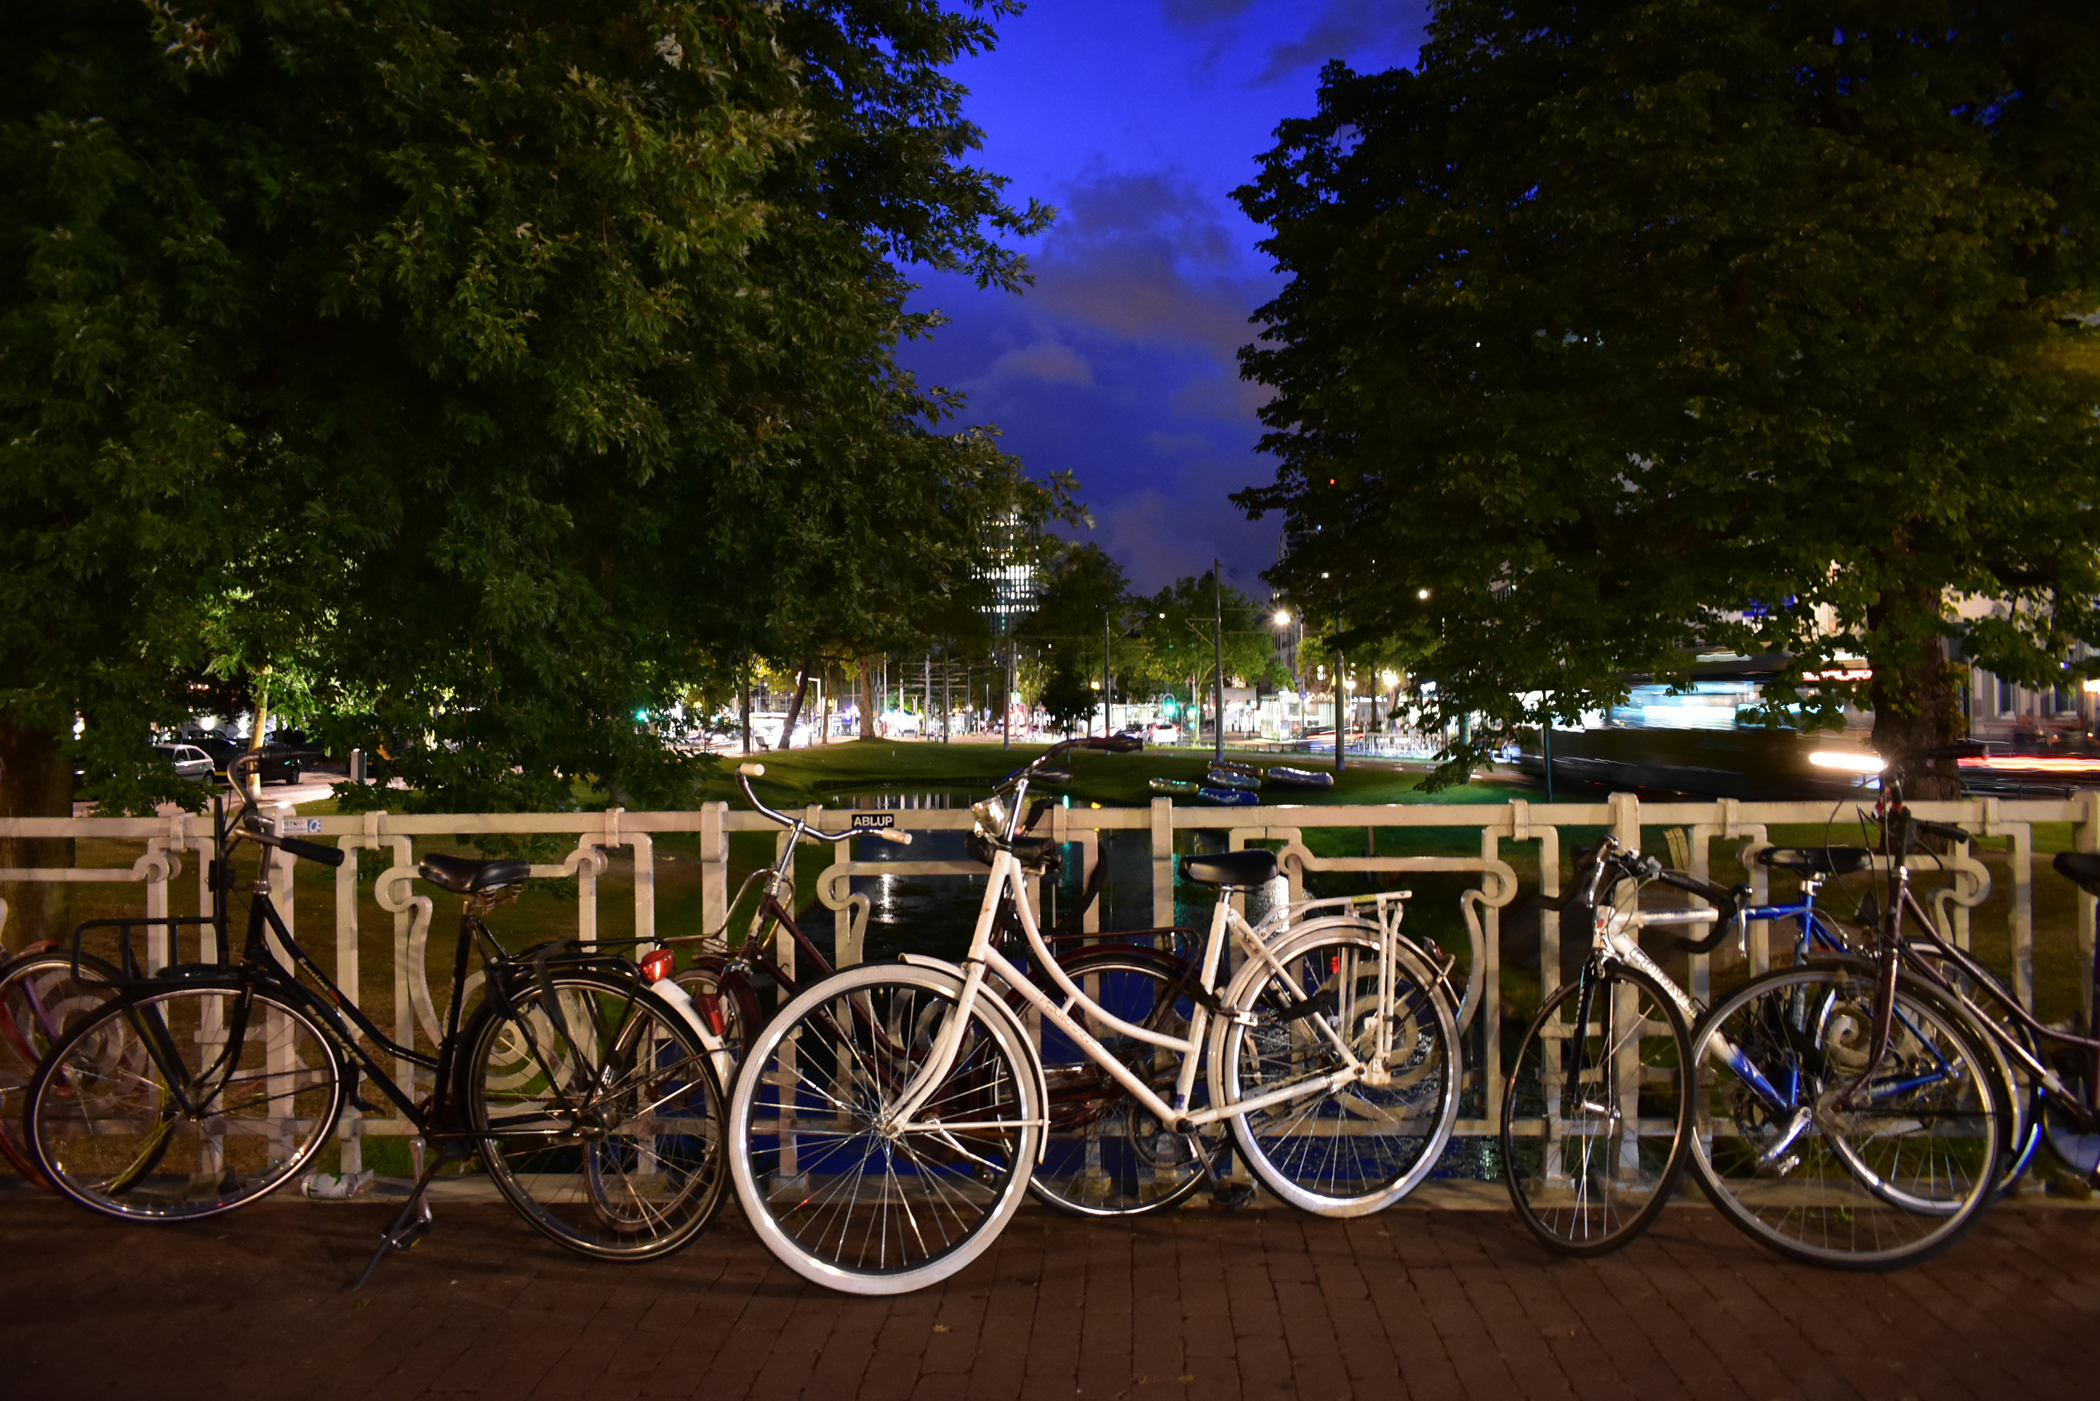 Night photo of bicycles on a bridge in Rotterdam.